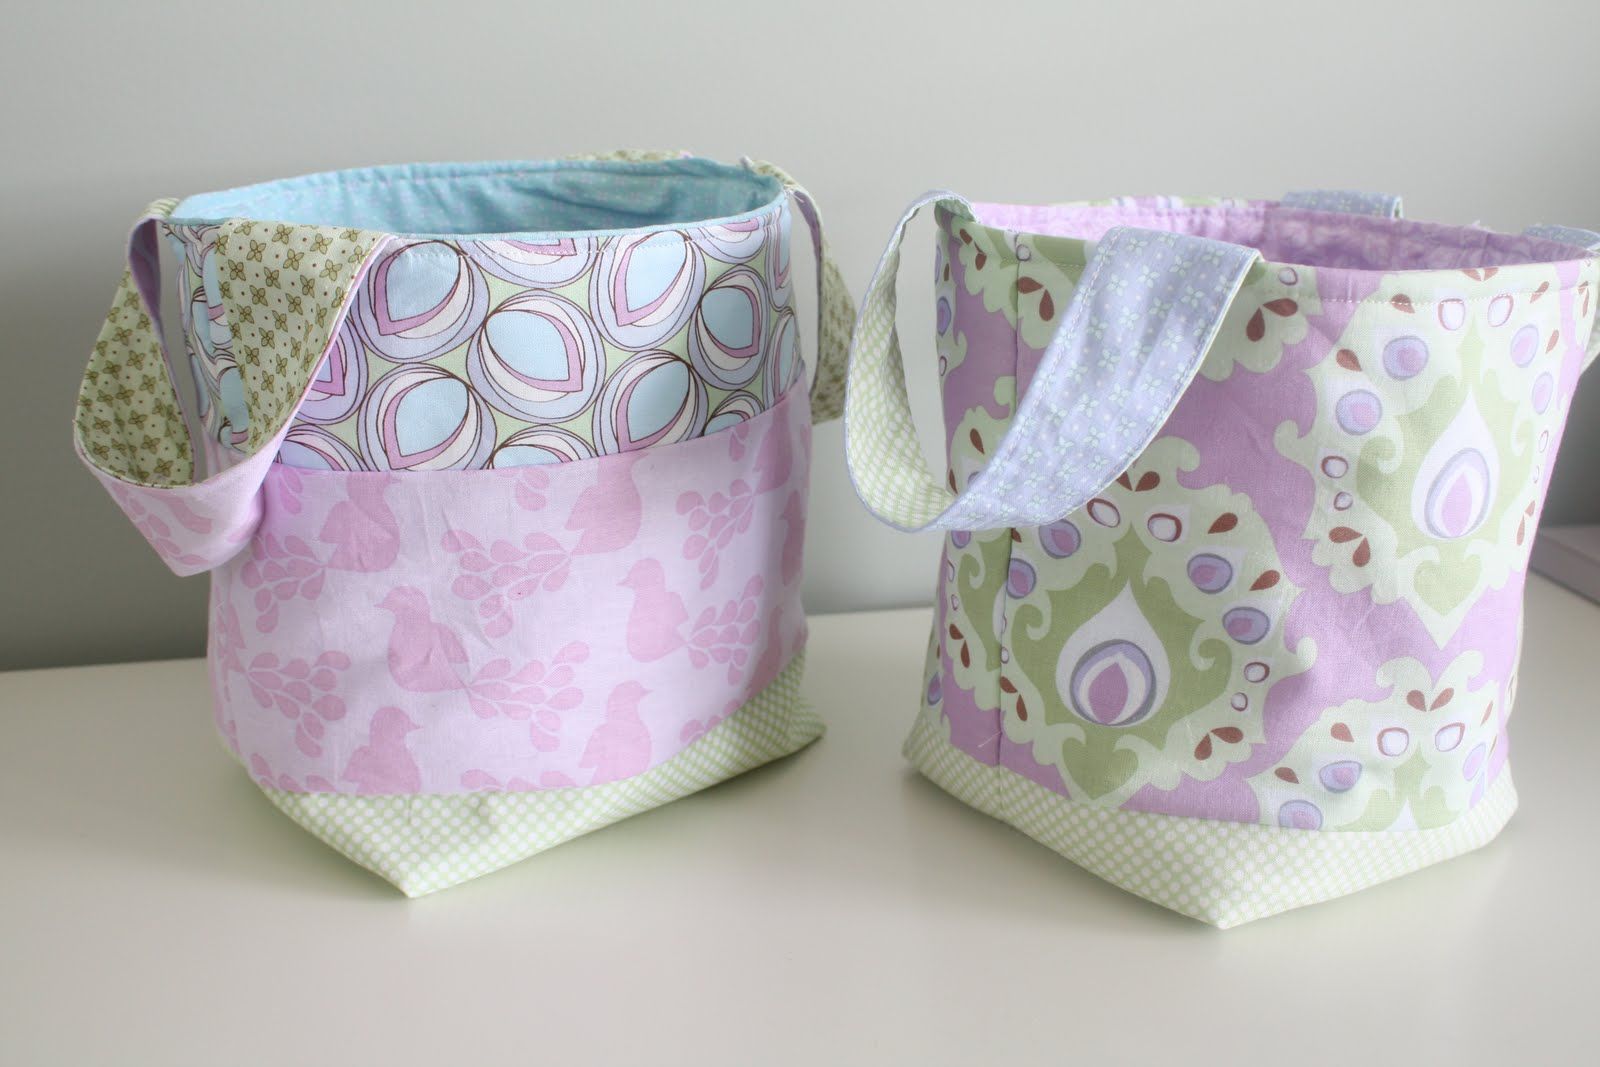 ... Design - Calgary Design and Lifestyle Blog: {diy} fabric basket